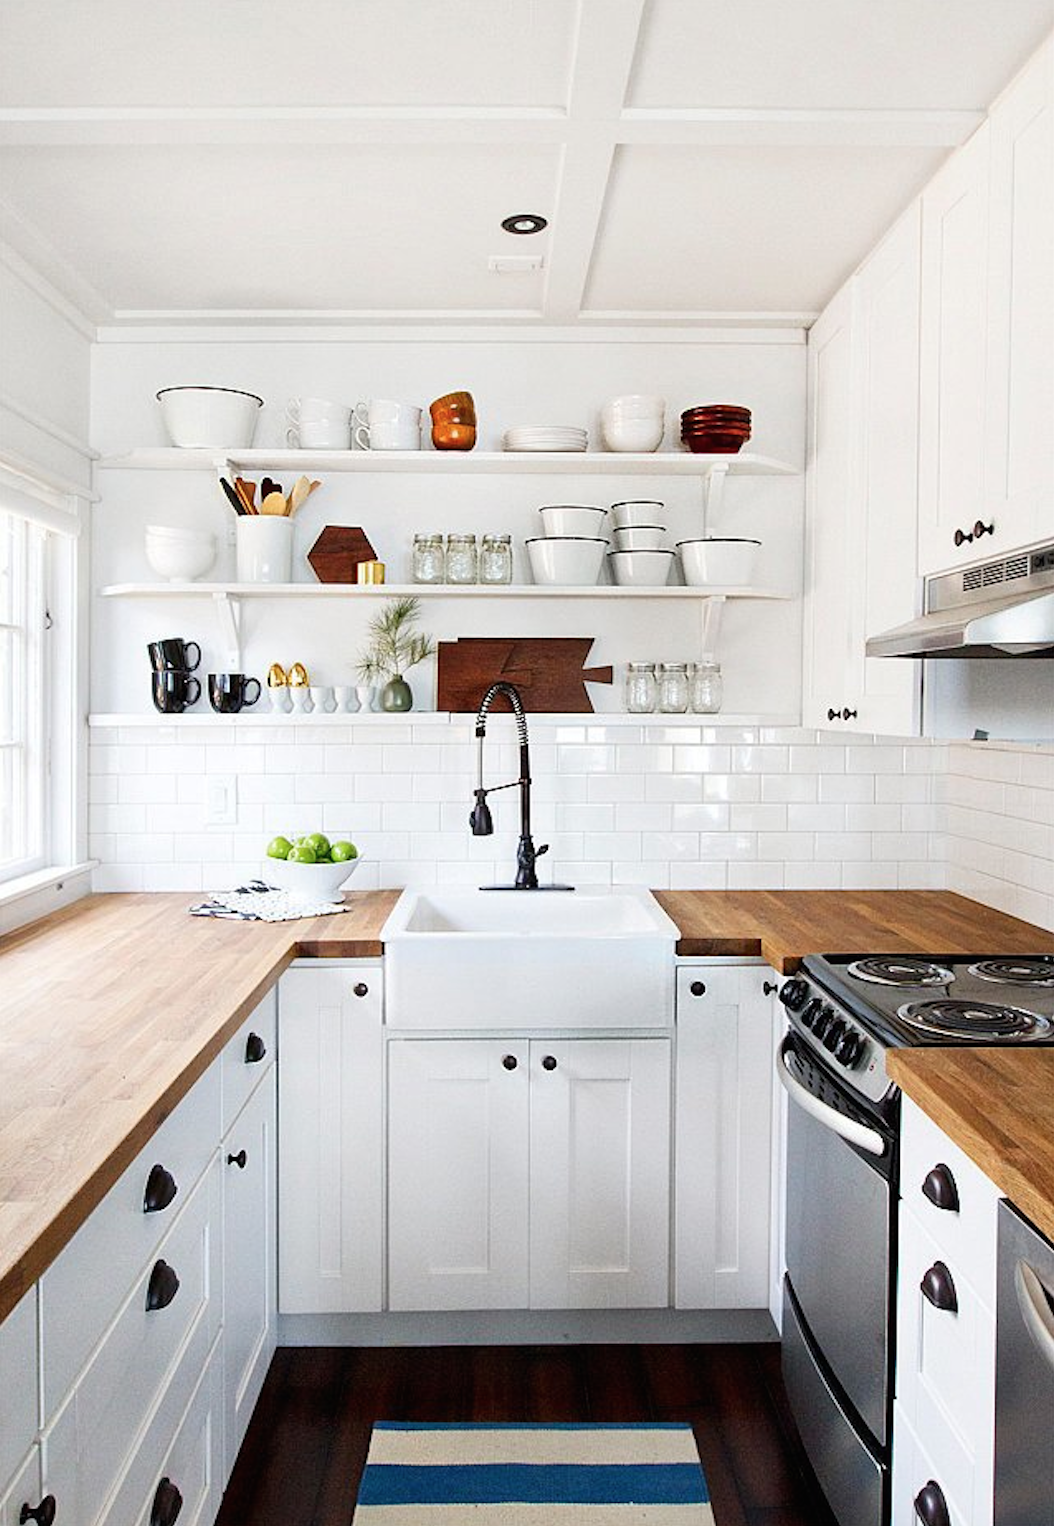 Remodeling 101: All About Butcher Block Countertops ...